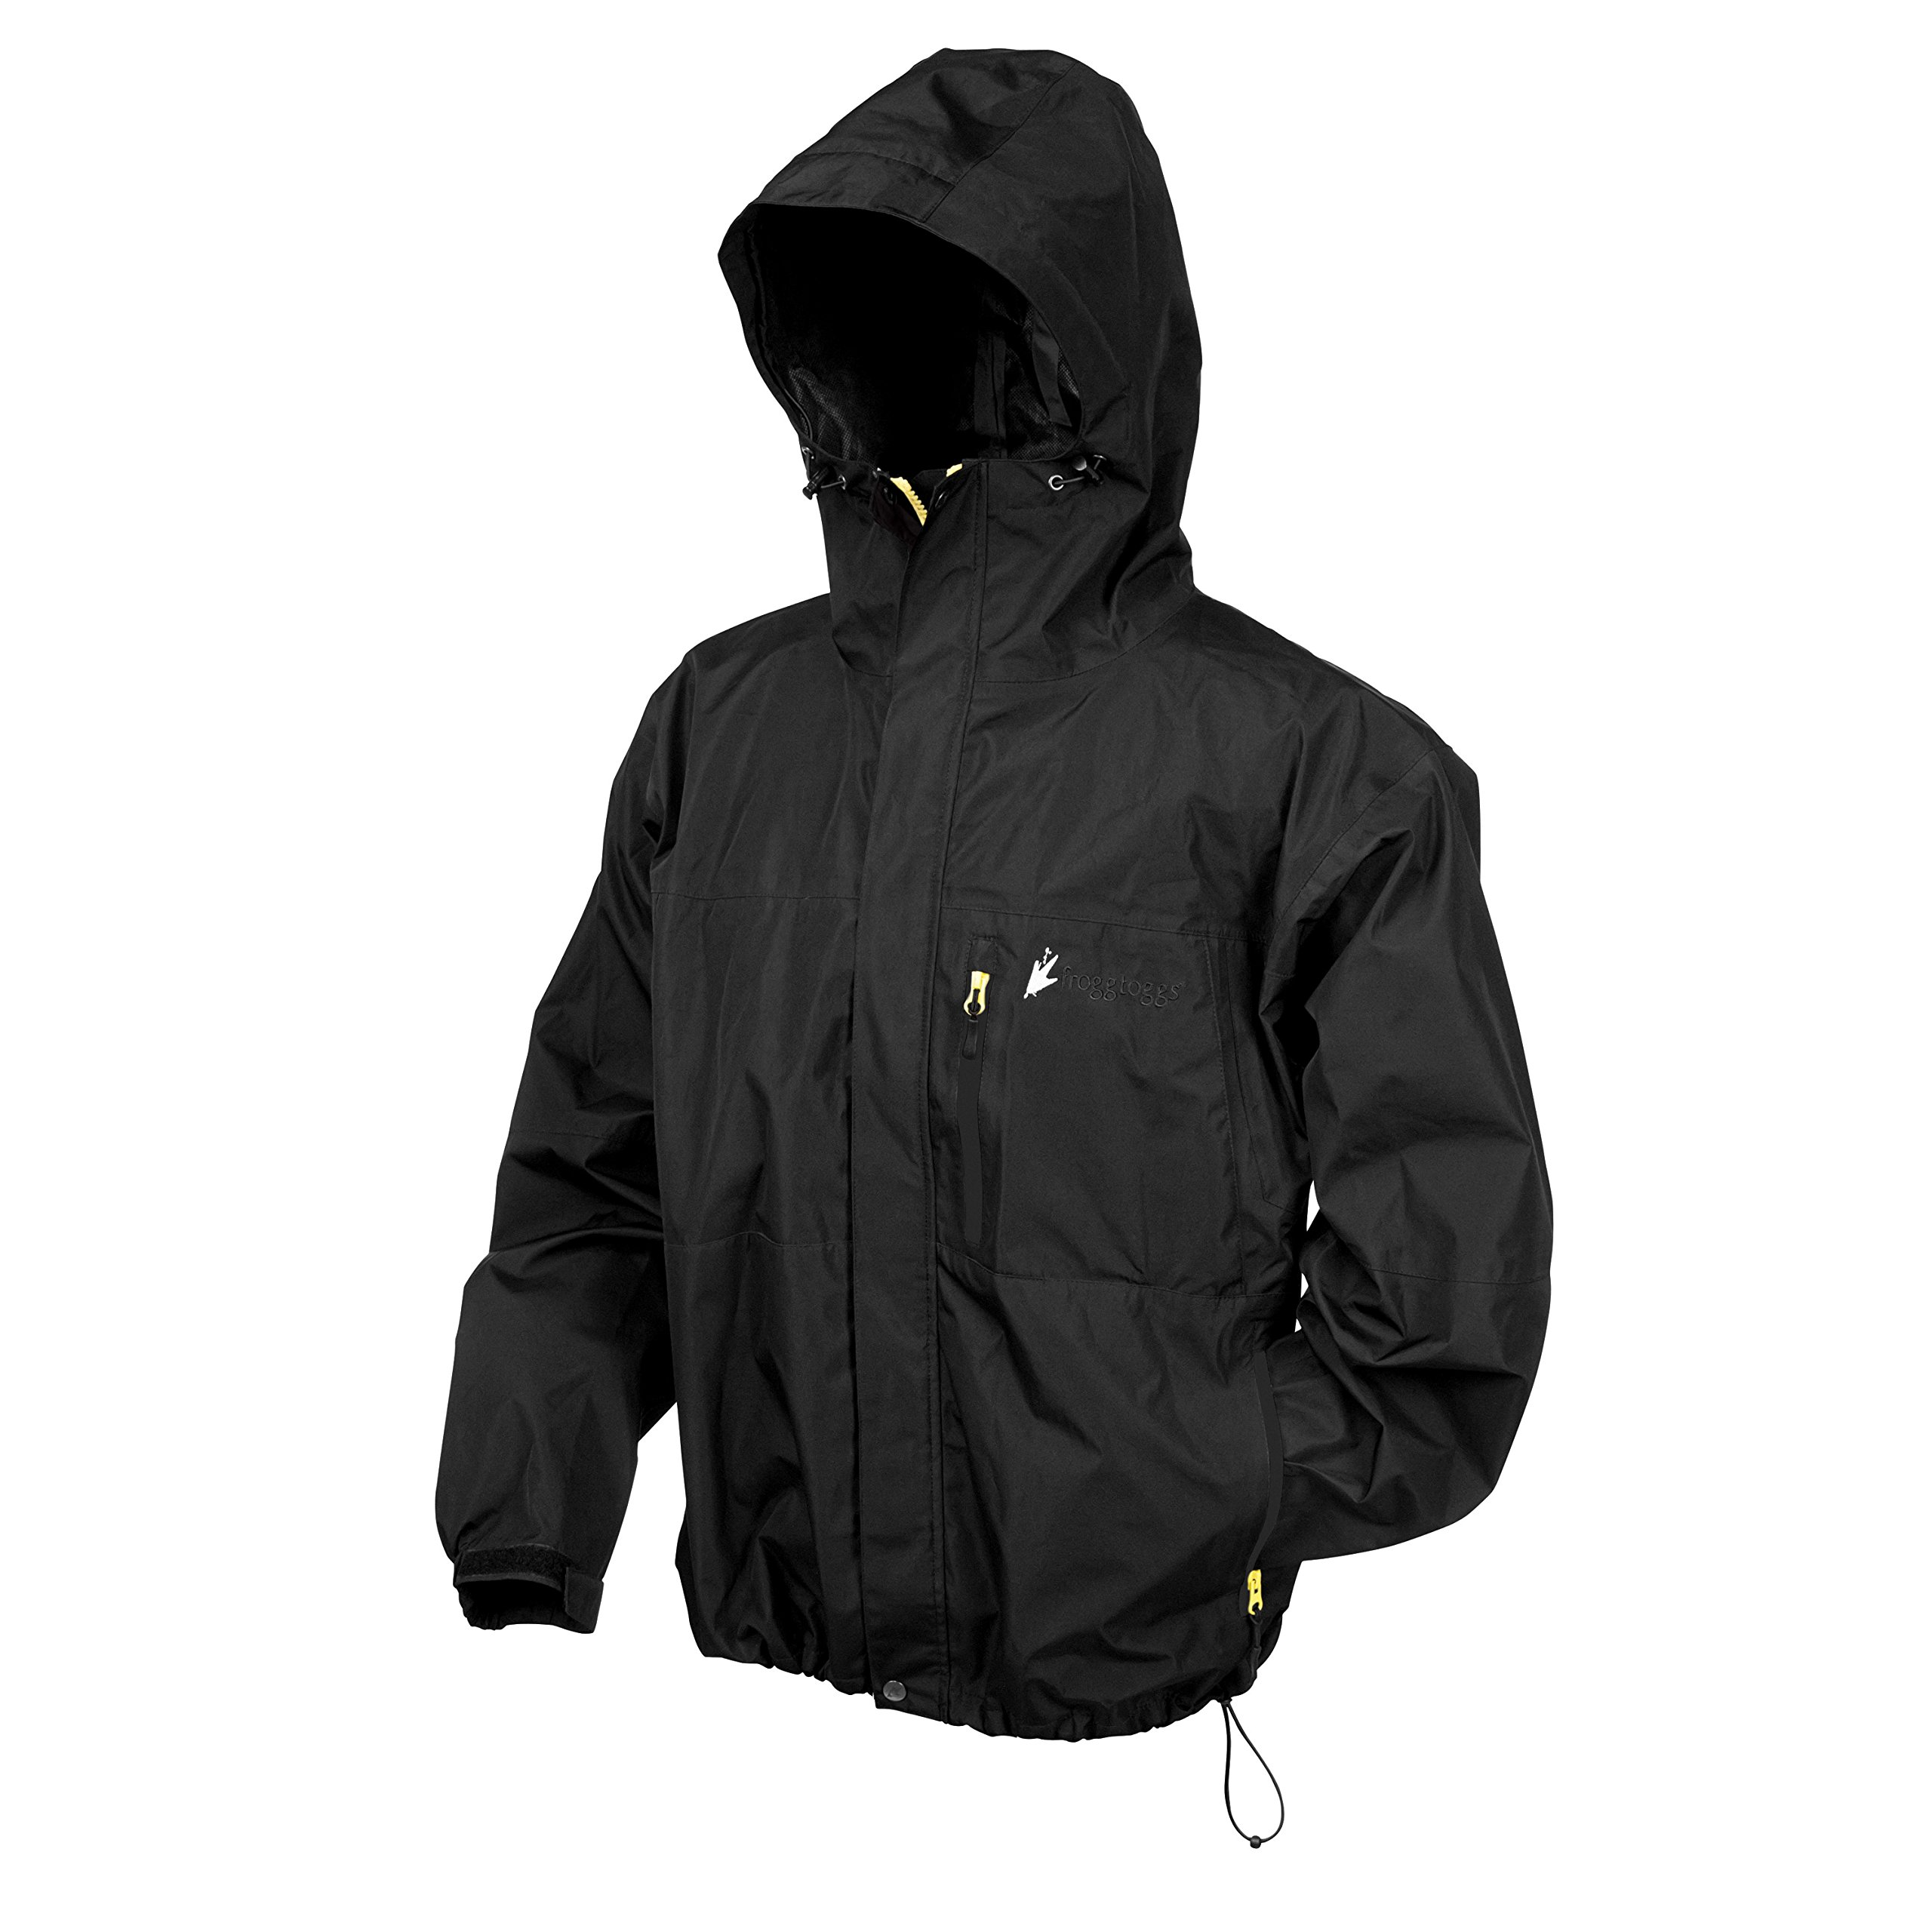 Frogg Toggs ToadRage II Jacket, Black, Size Small